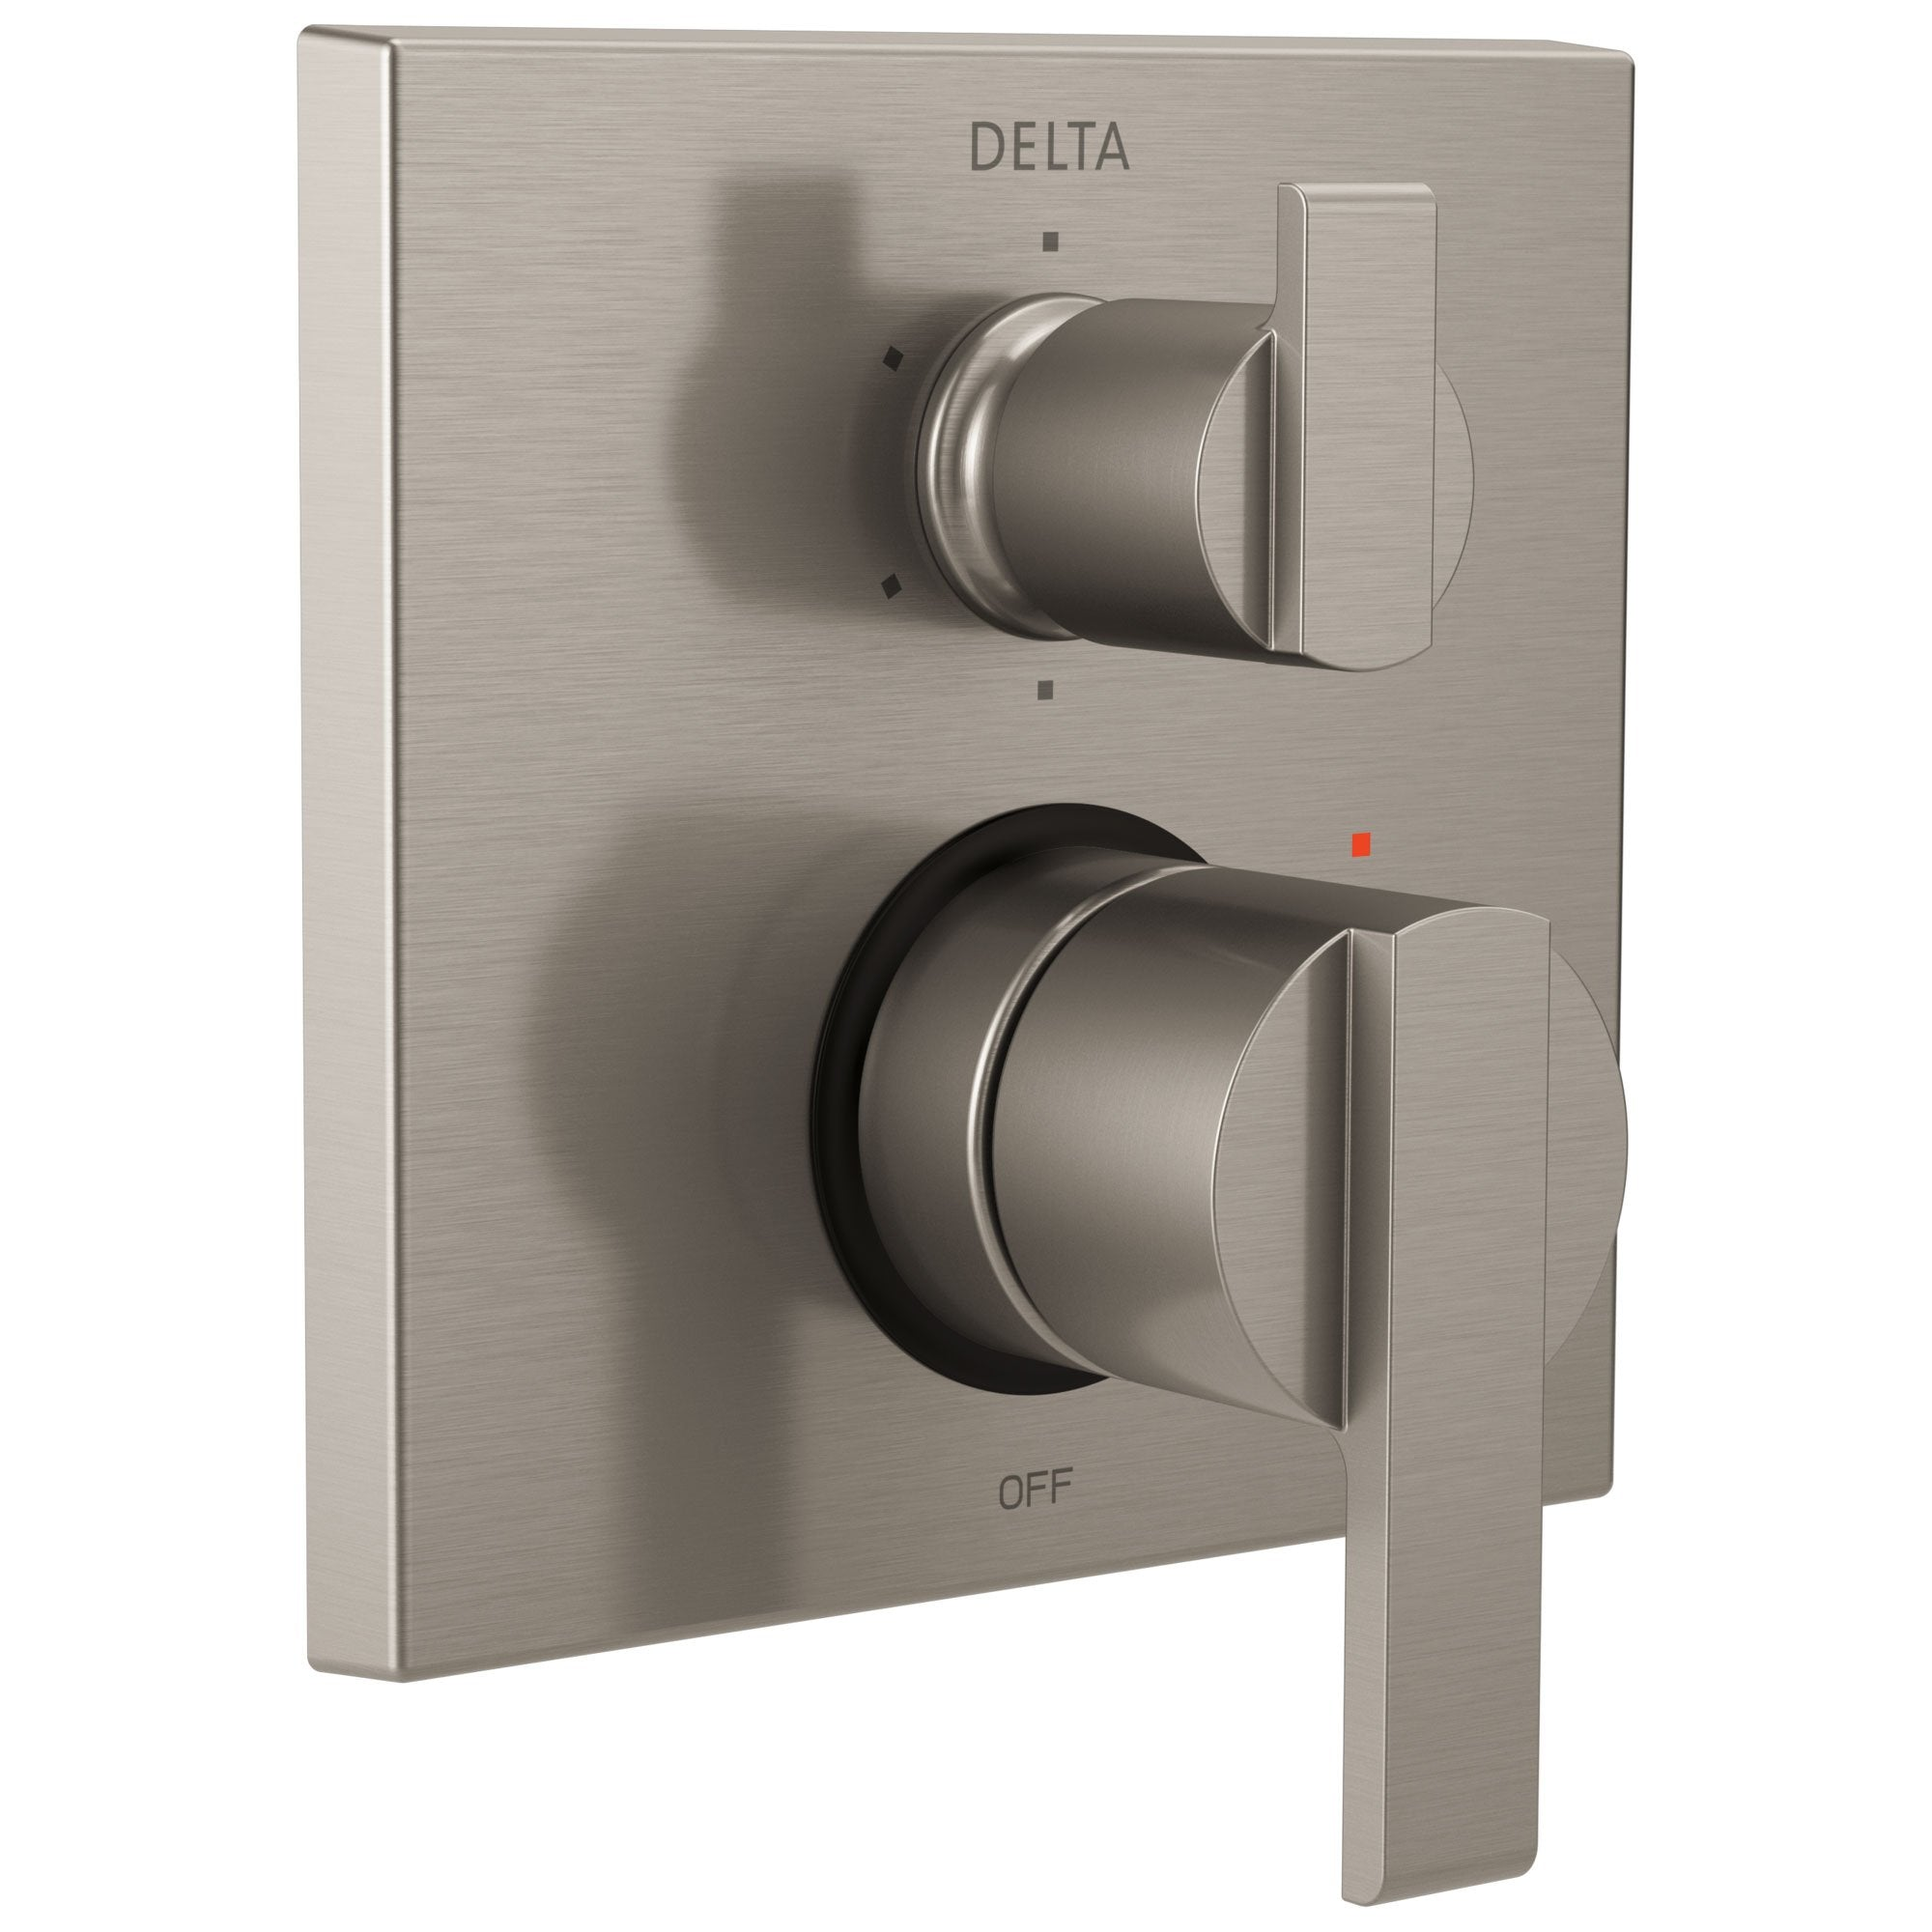 Delta Ara Collection Stainless Steel Finish Modern Shower Faucet Control Handle with 6-Setting Integrated Diverter Includes Trim Kit and Valve without Stops D2190V